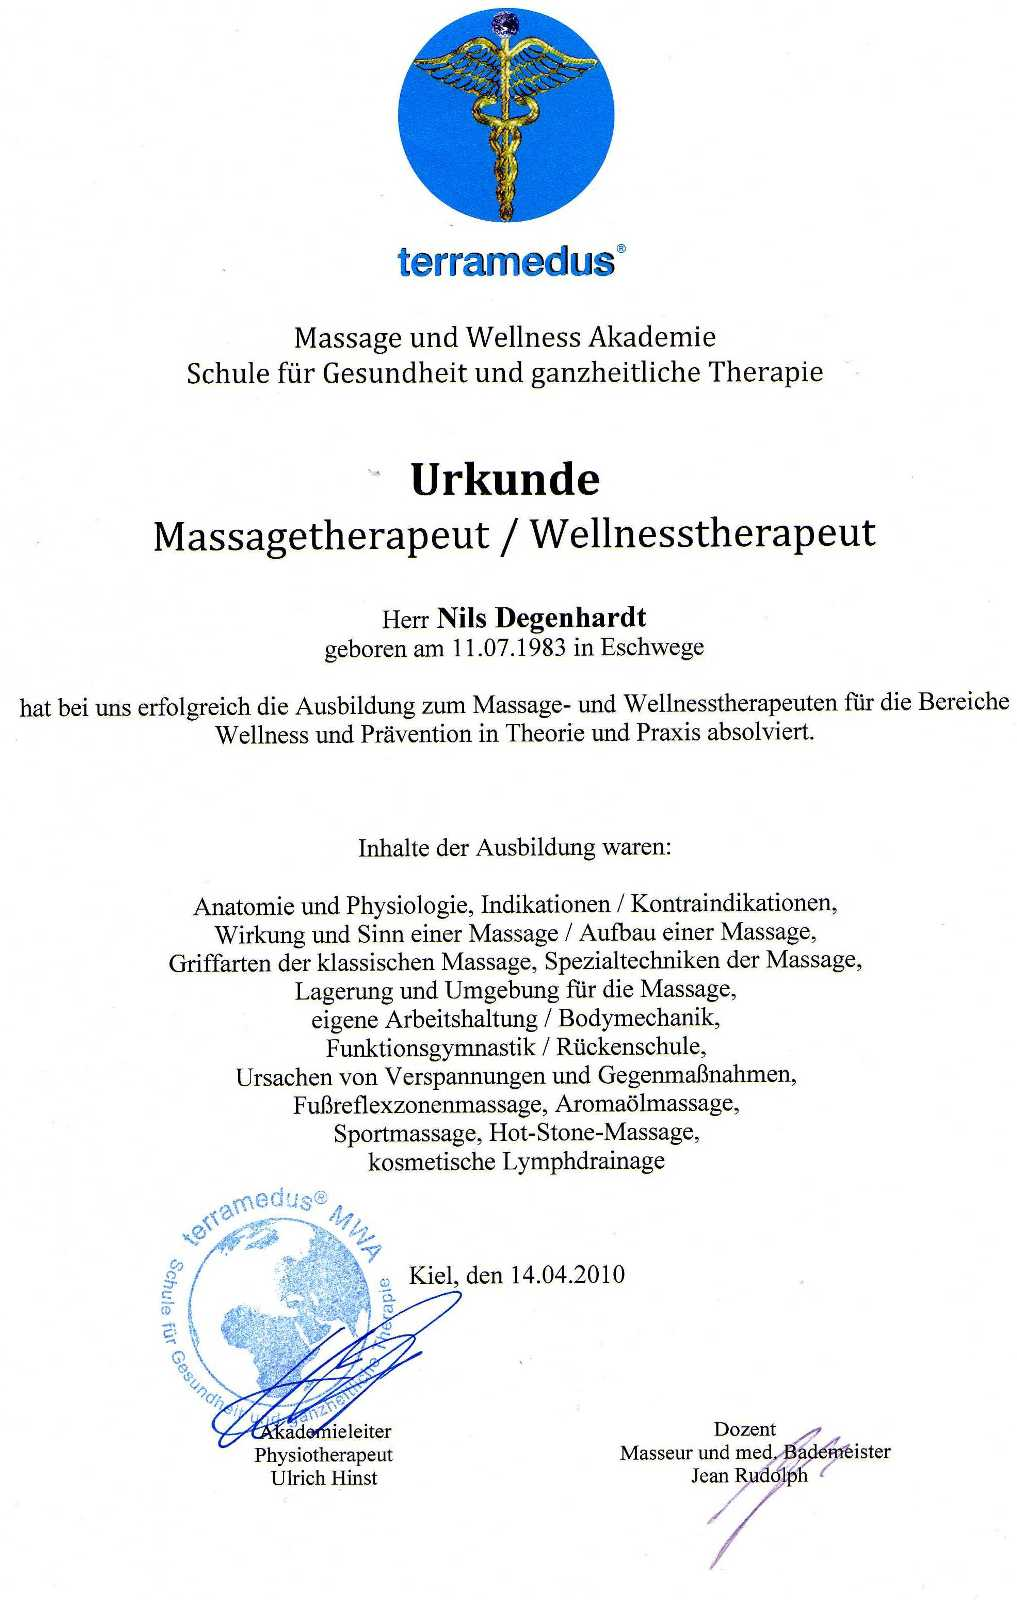 nils degenhardt mobile massage willkommen bei massage at home kiel mobile massage in kiel. Black Bedroom Furniture Sets. Home Design Ideas